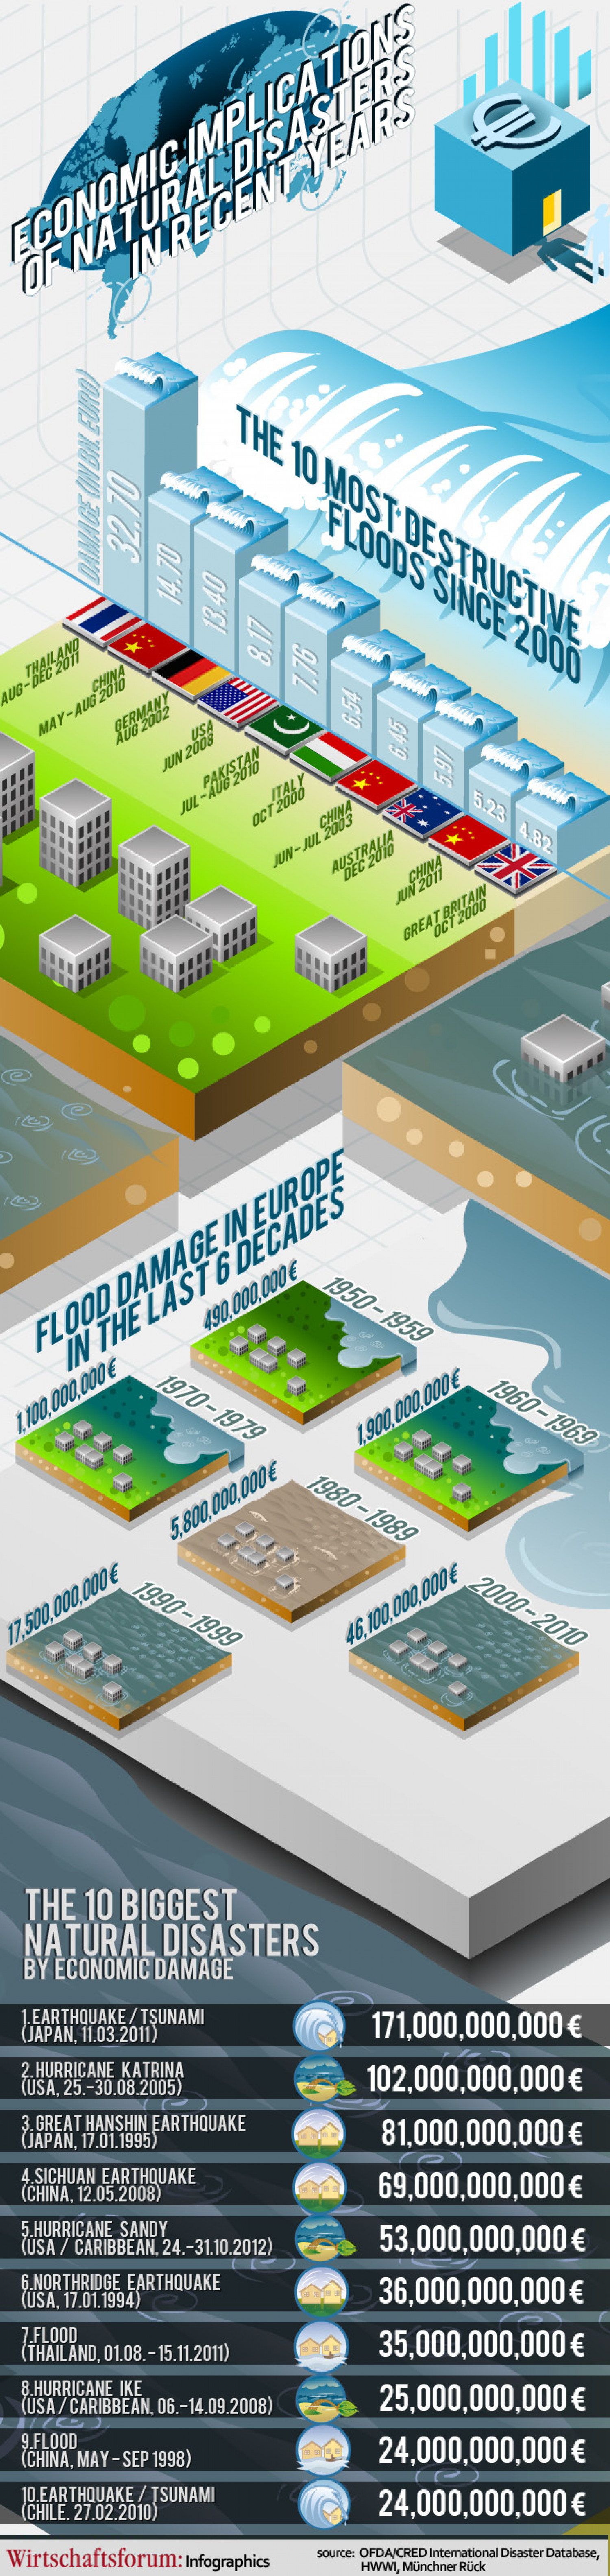 Economic implications of natural disasters in recent years Infographic